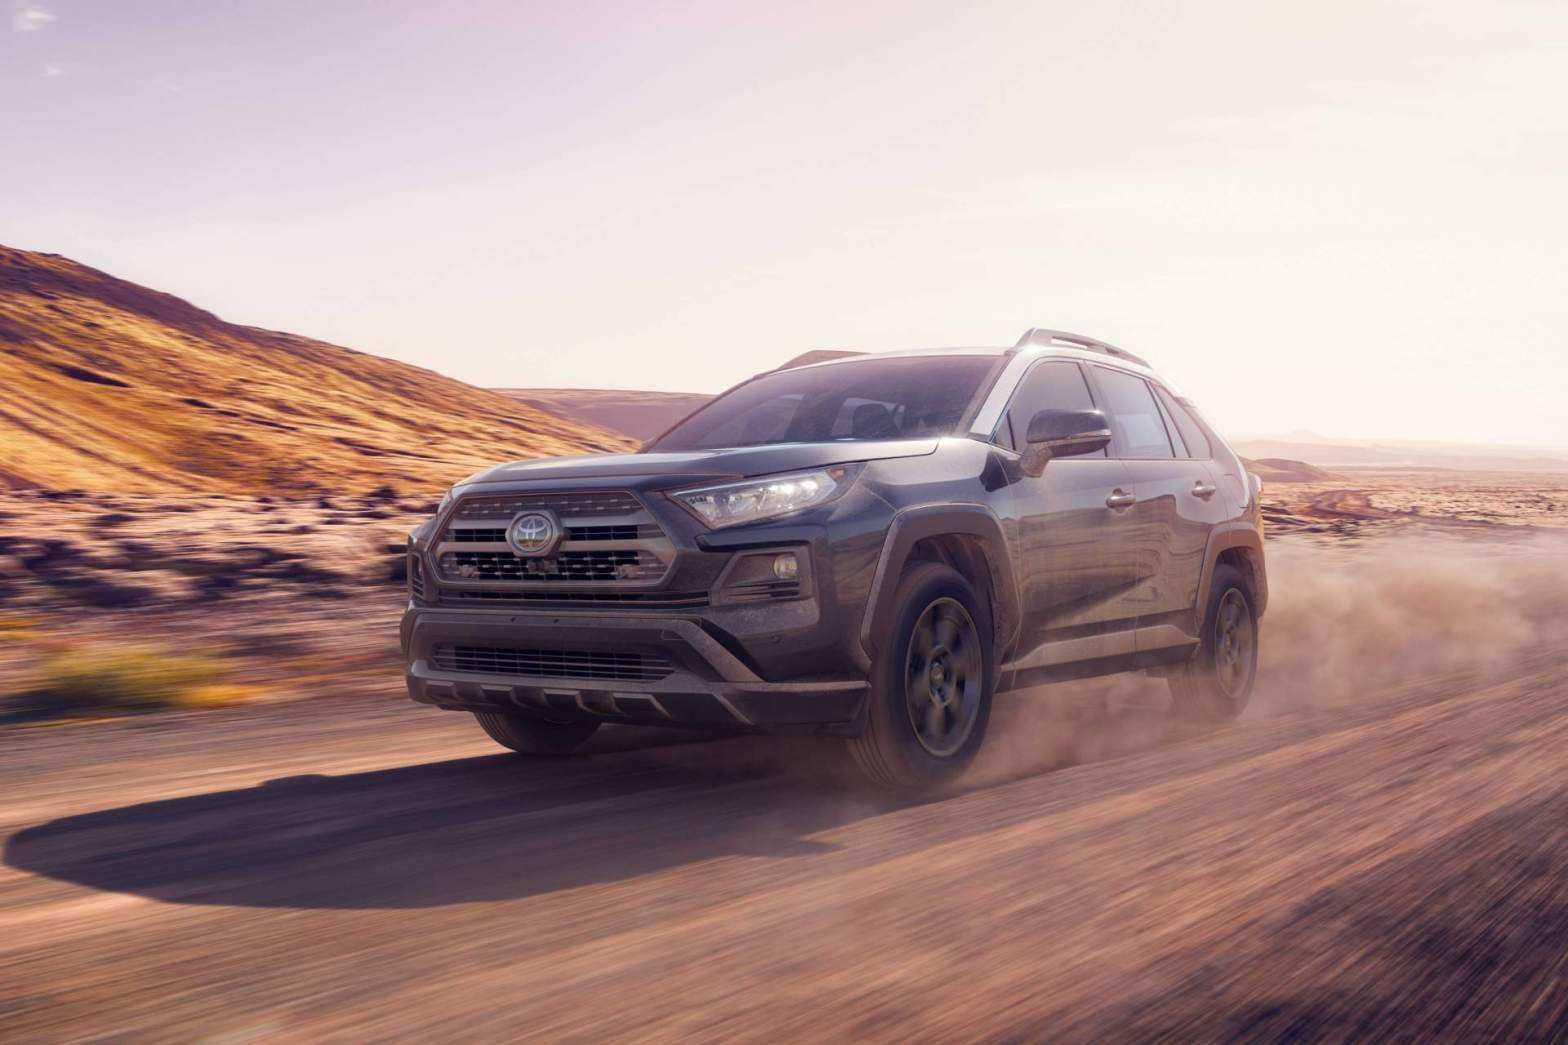 91 Concept of 2020 Toyota Rav4 Ground Clearance Speed Test with 2020 Toyota Rav4 Ground Clearance